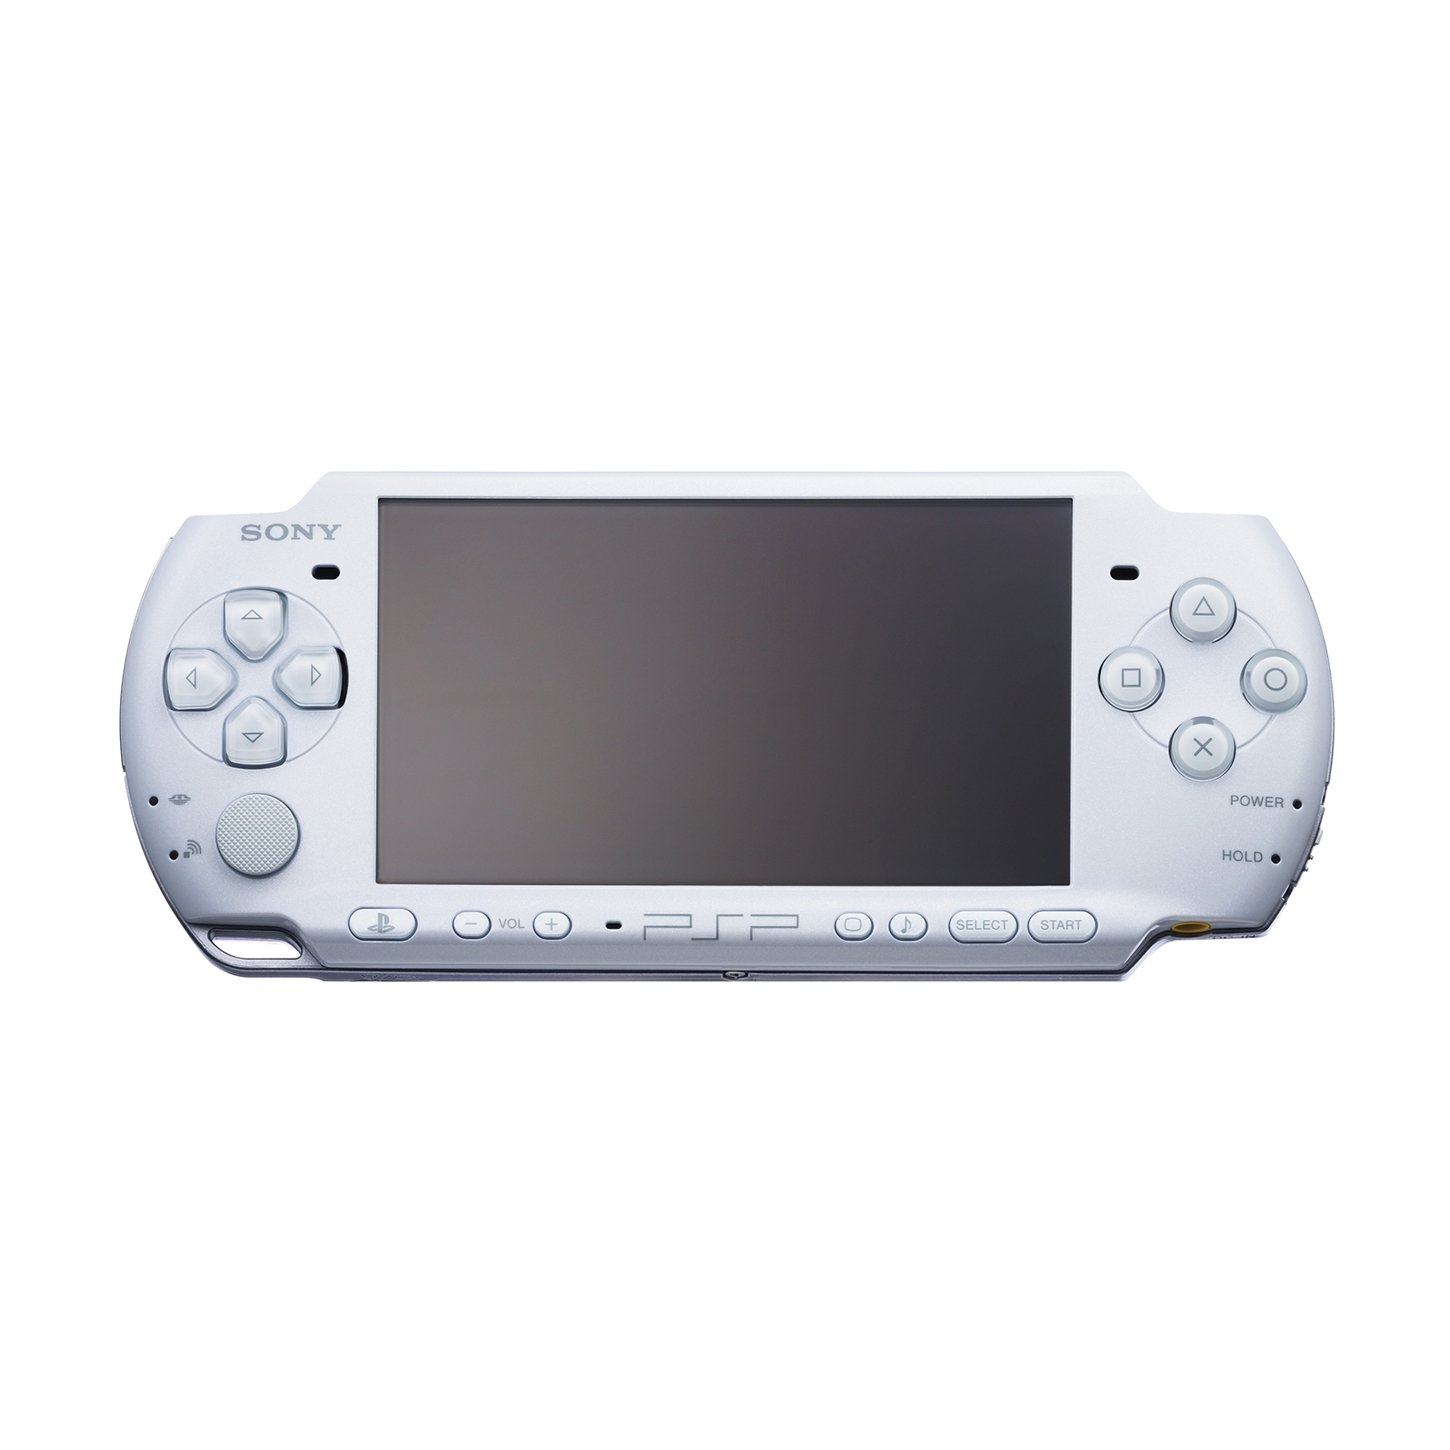 Sony Playstation Portable (PSP) 3000 Series Handheld Gaming Console System - White (Renewed)